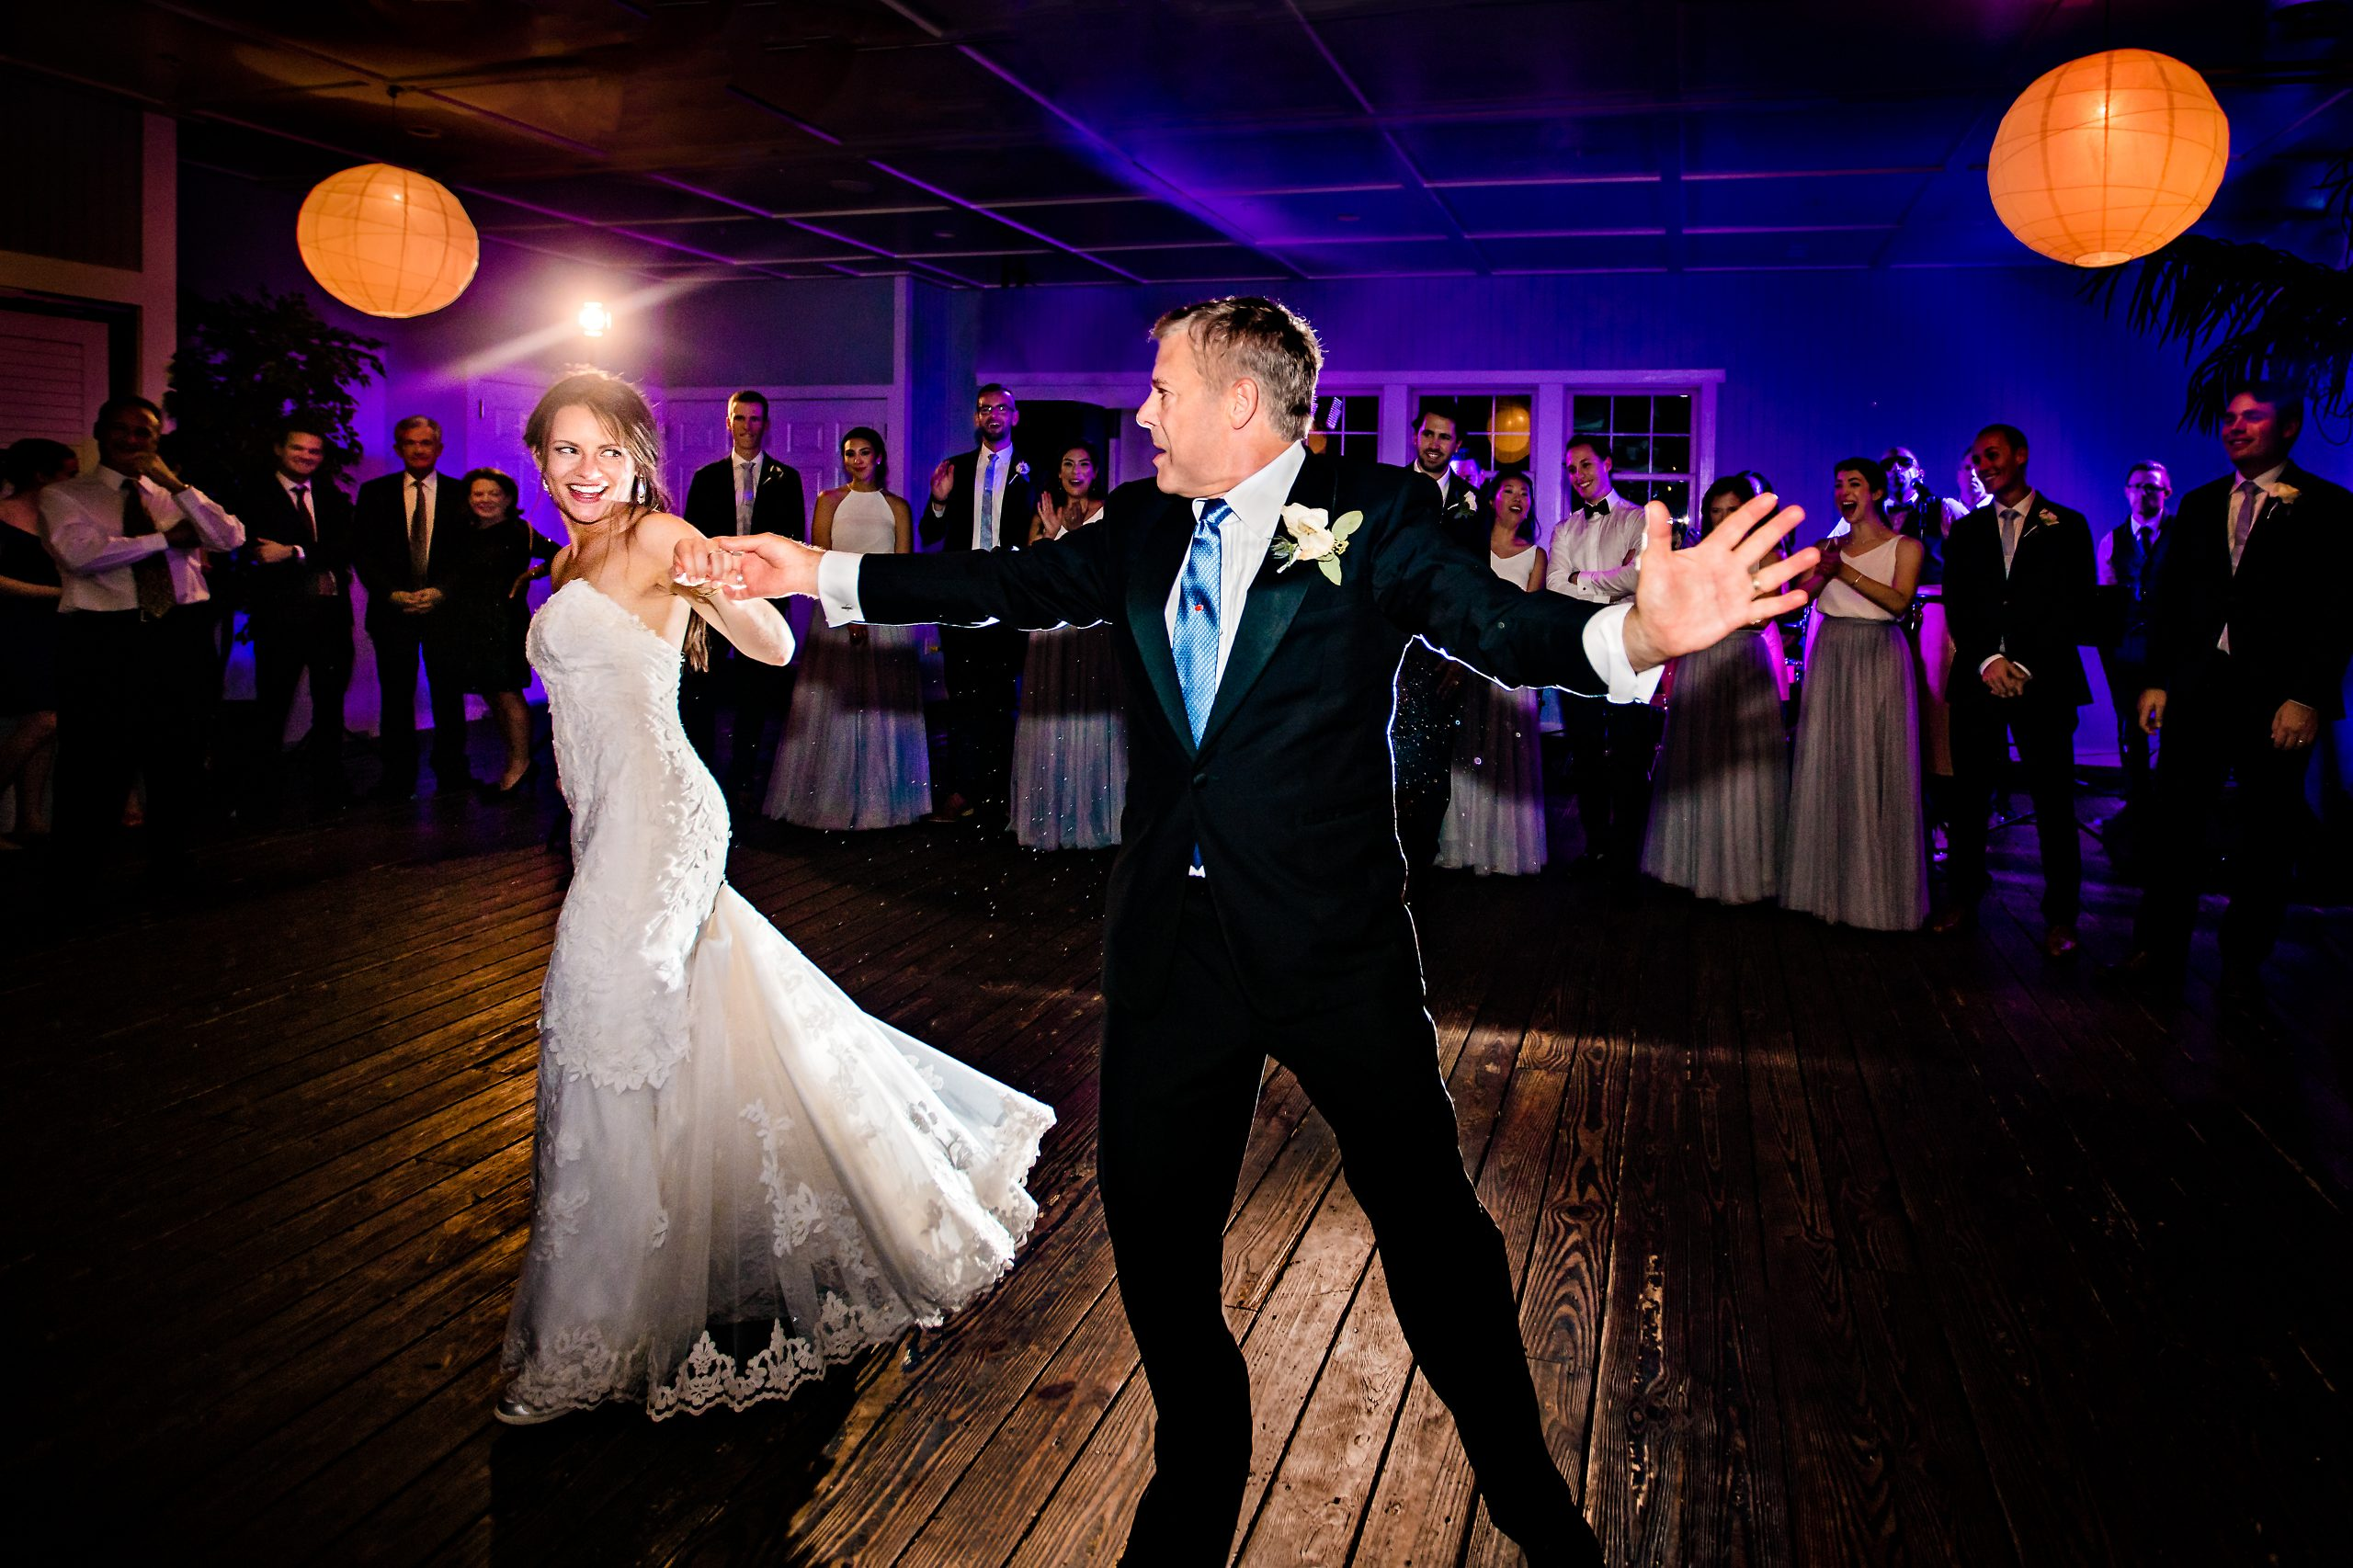 Bride and her father share a dance at the wedding banquet